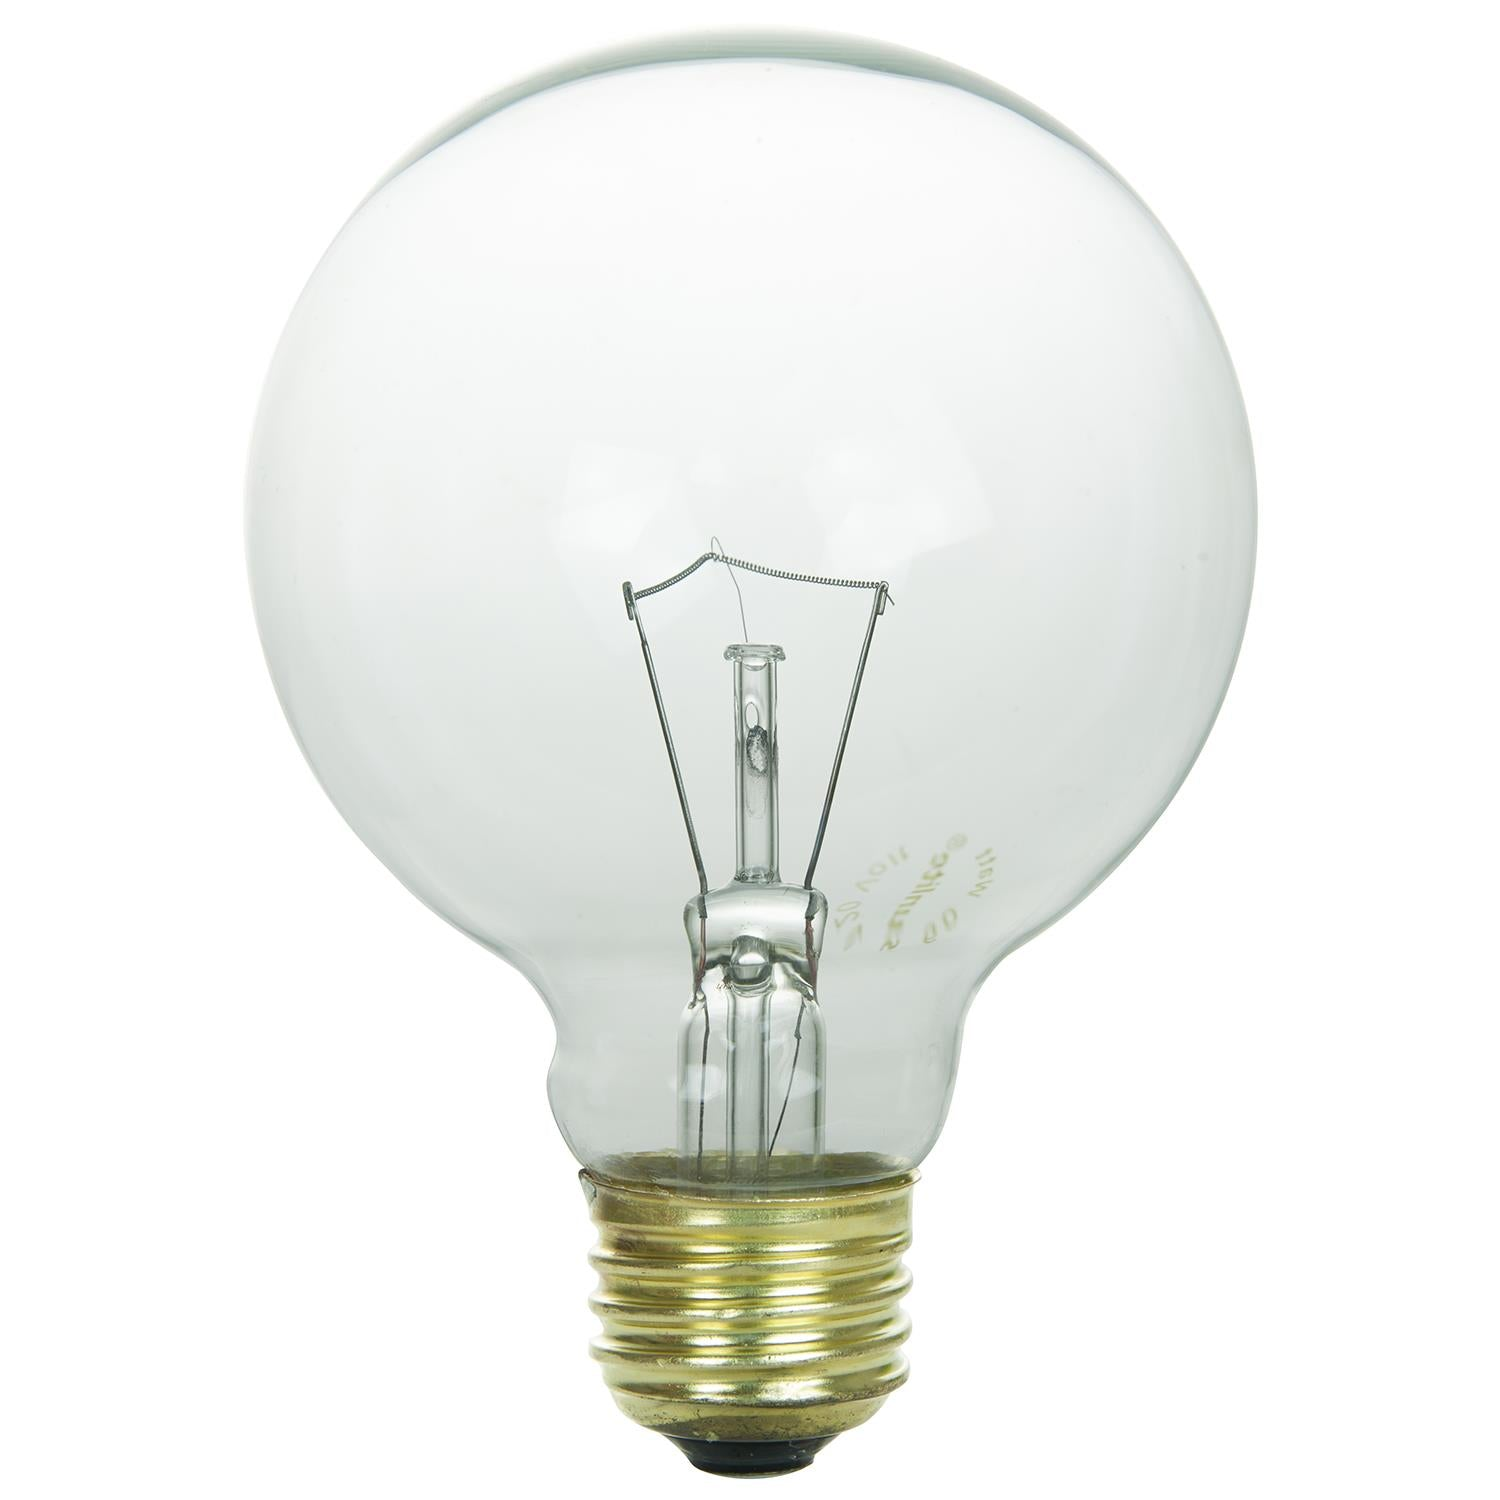 Sunlite 40w 130v G25 Globe Medium Base Clear Incandescent Bulb